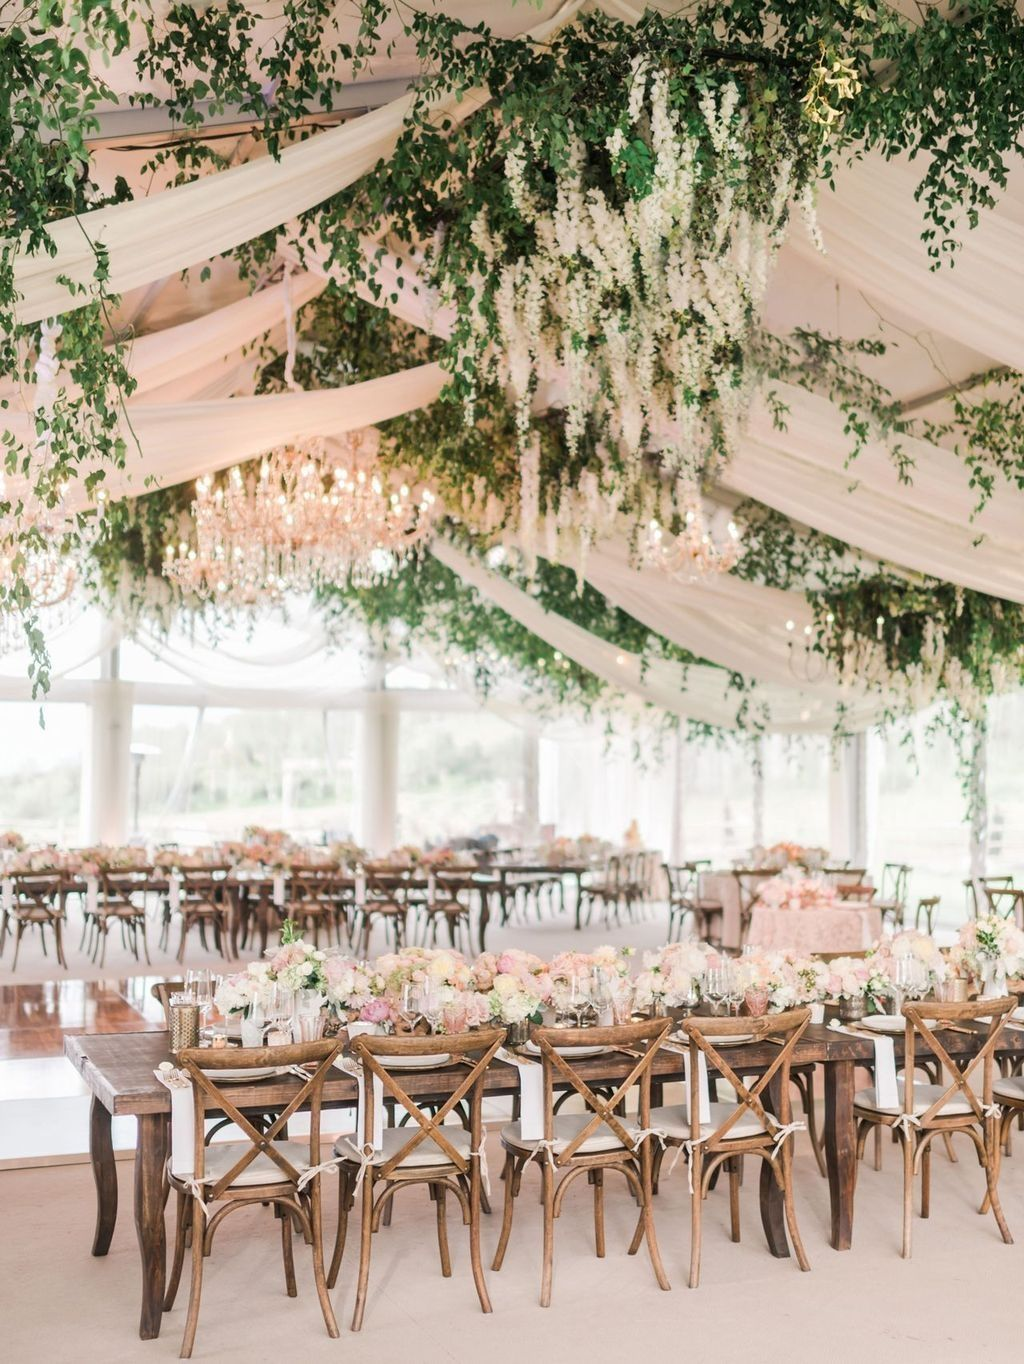 Prodigious Perfect Ideas For Great Wedding Outdoor Party In 2020 Rustic Glam Wedding Whimsical Wedding Decorations Tent Decorations